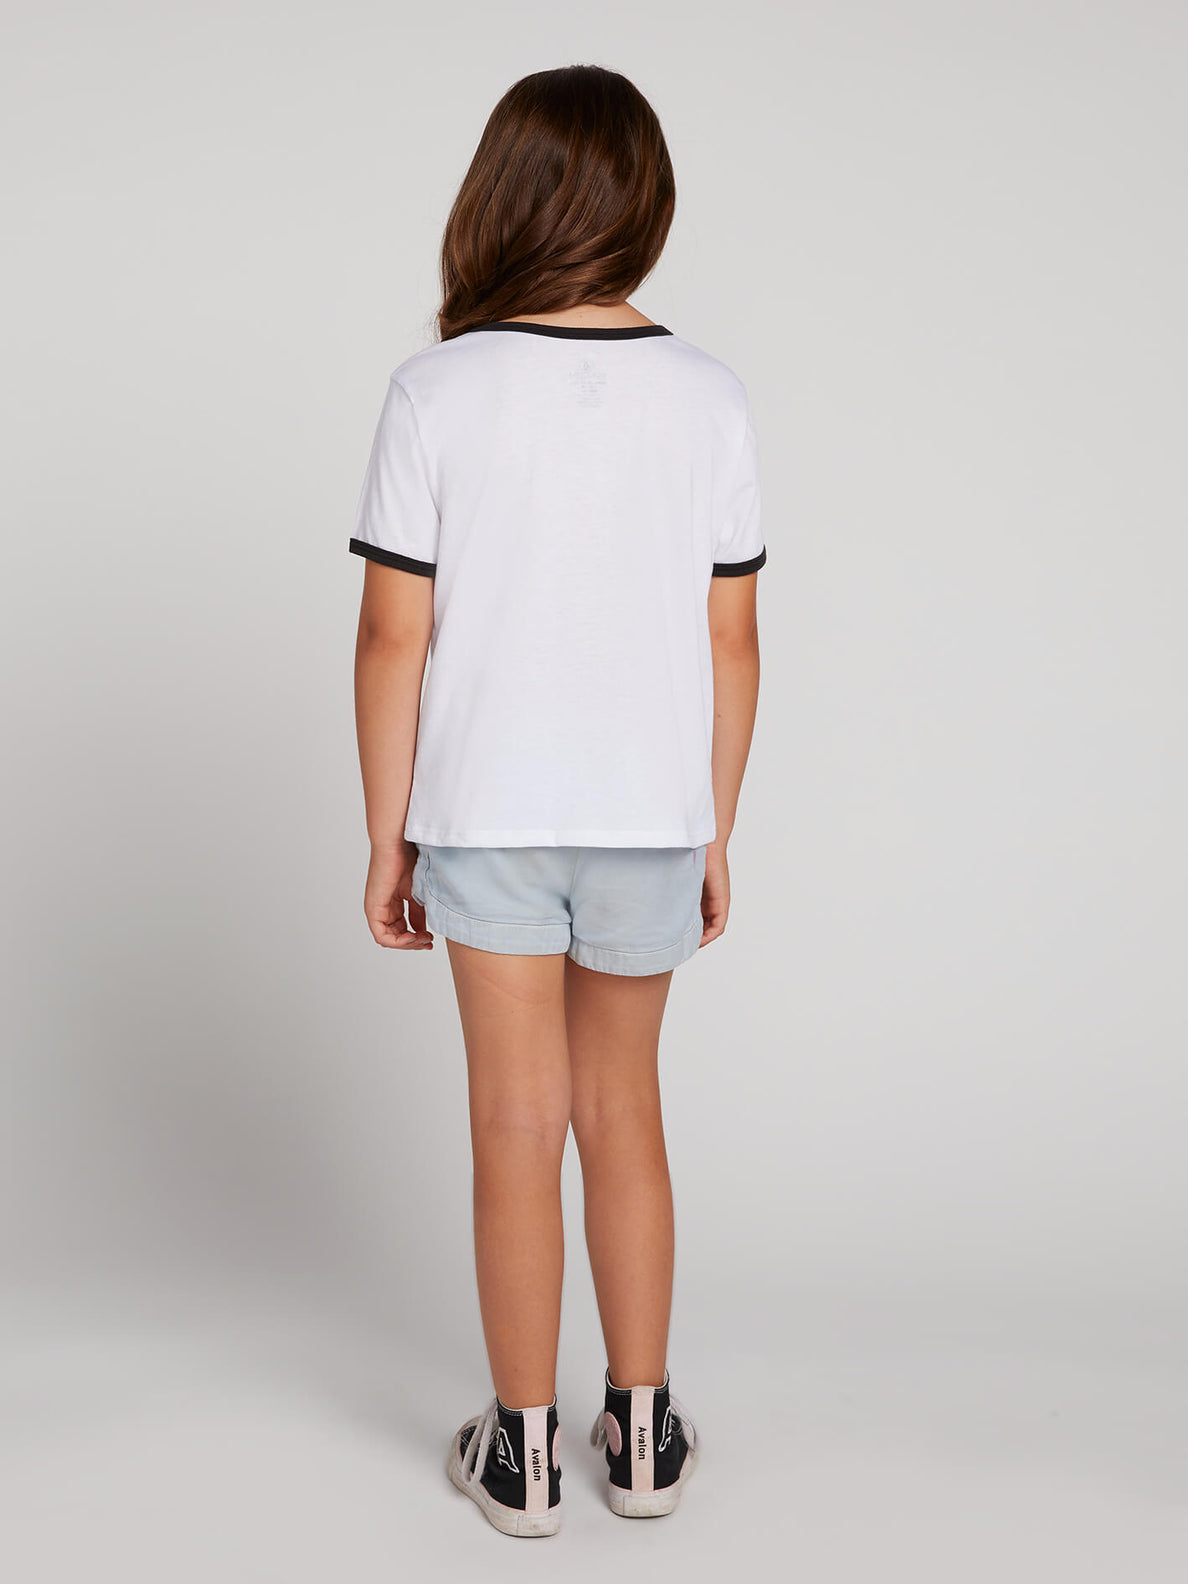 Big Girls Hey Slims Tee In White Combo, Back View